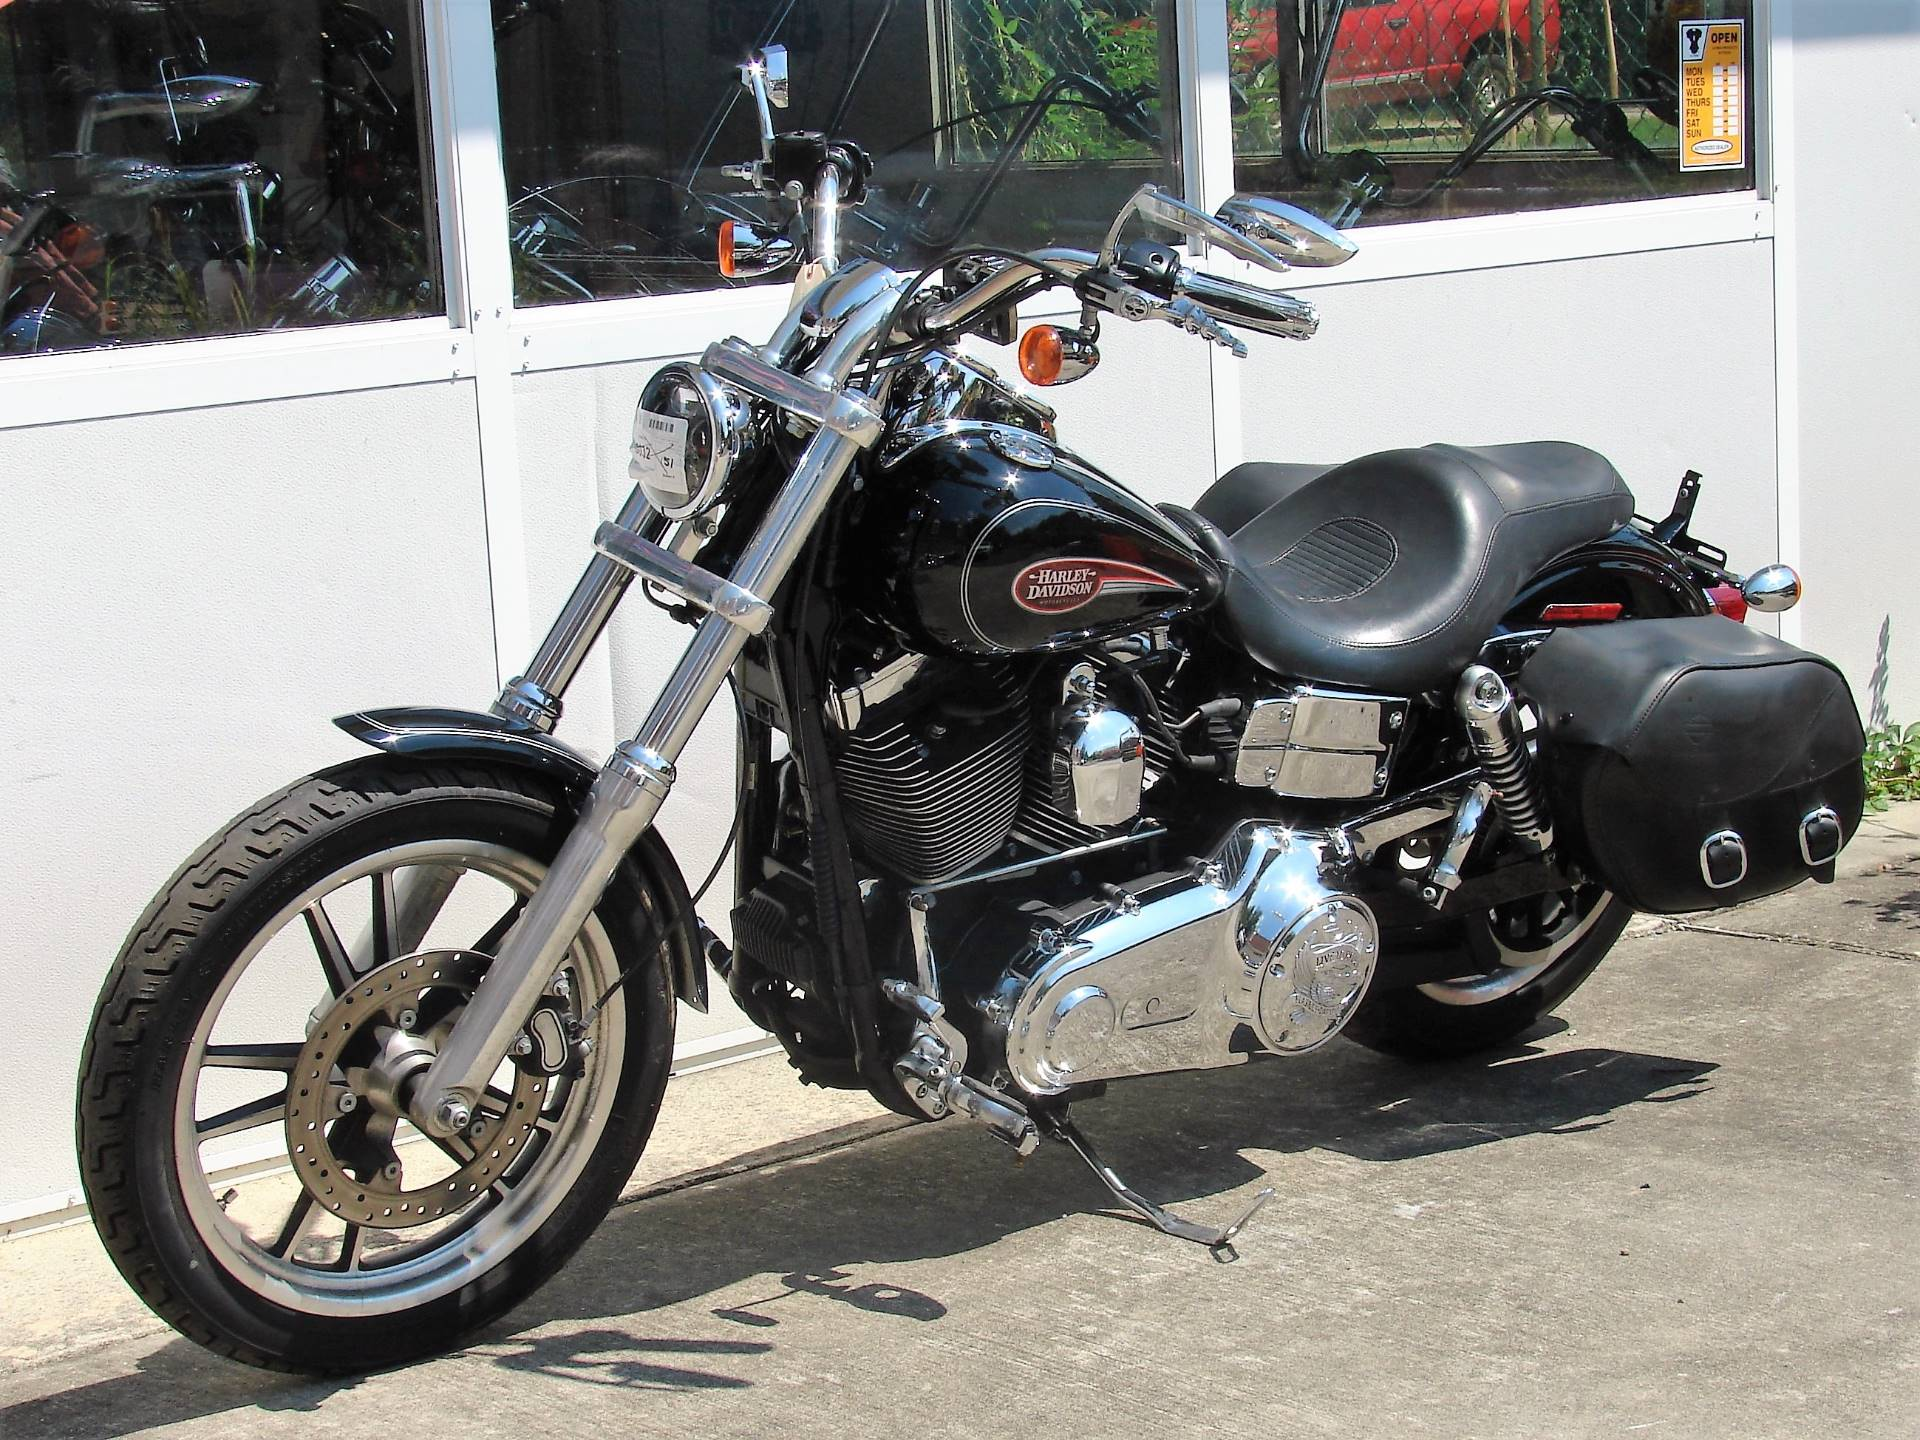 2008 Harley-Davidson FXDL Dyna Low Rider in Williamstown, New Jersey - Photo 11